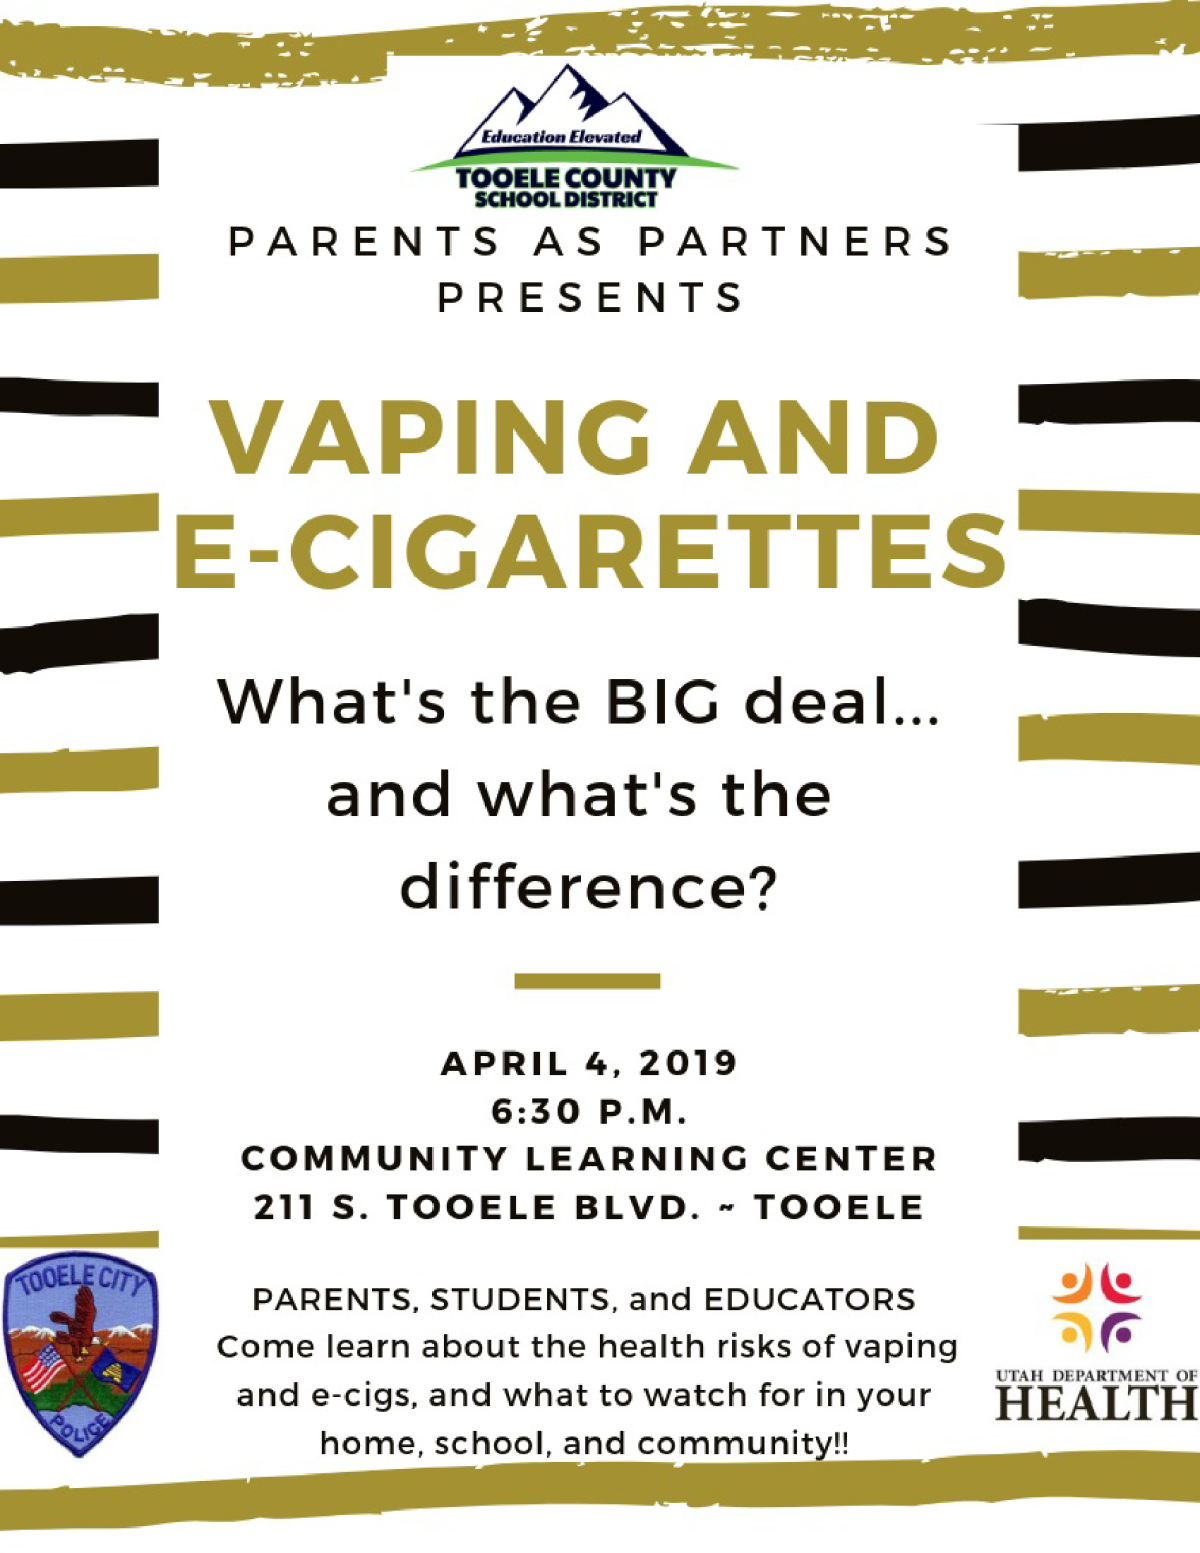 Vaping and E-Cigarettes - Parents as Partners @ Community Learning Center